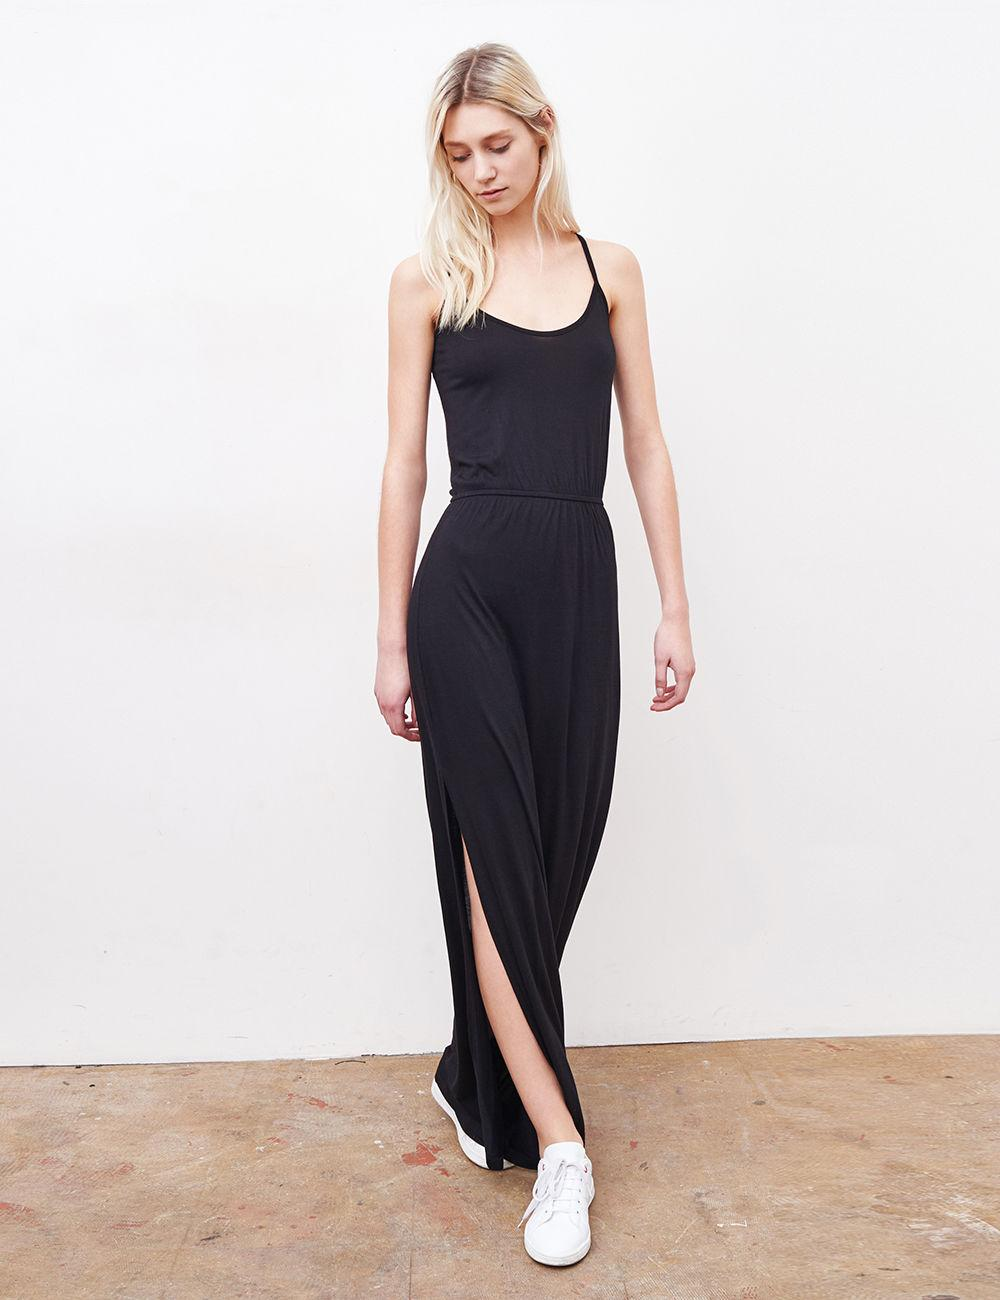 Robe noir longue simple